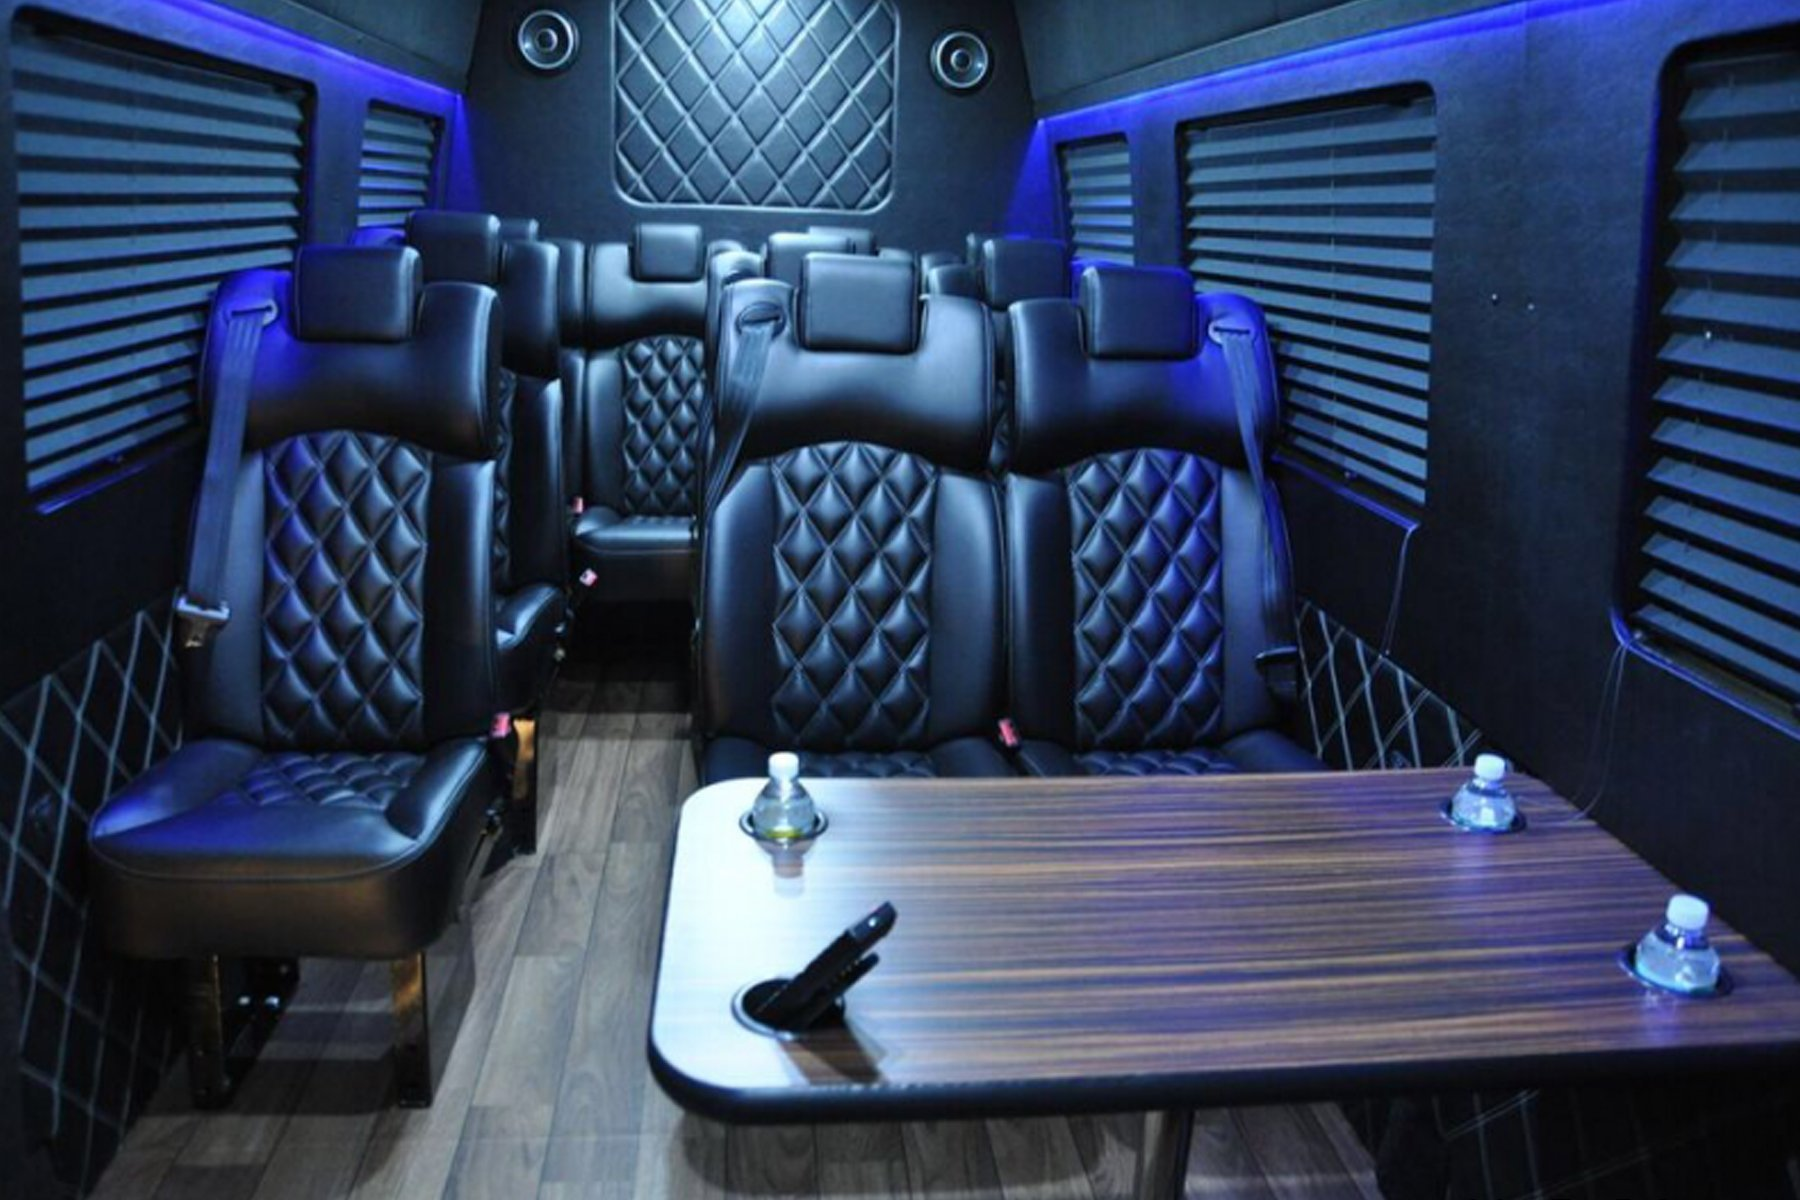 Skyline Chicago Limo Cars Luxury Fleet Black Mercedes Sprinter Interior Alt October 2020